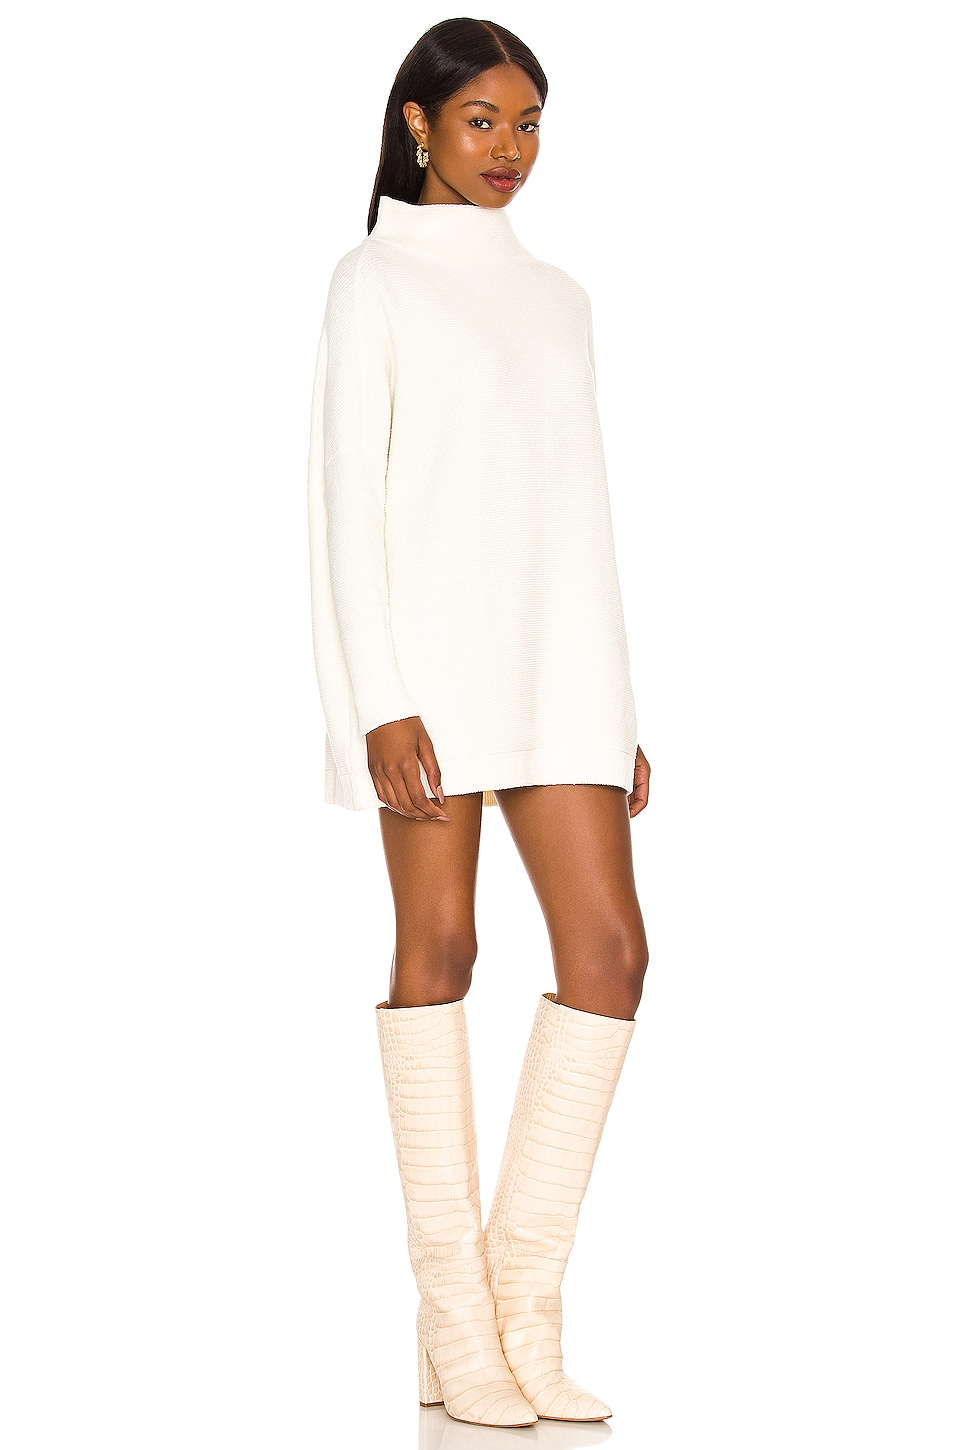 Ottoman Slouchy Tunic Sweater Dress, view 2, click to view large image.